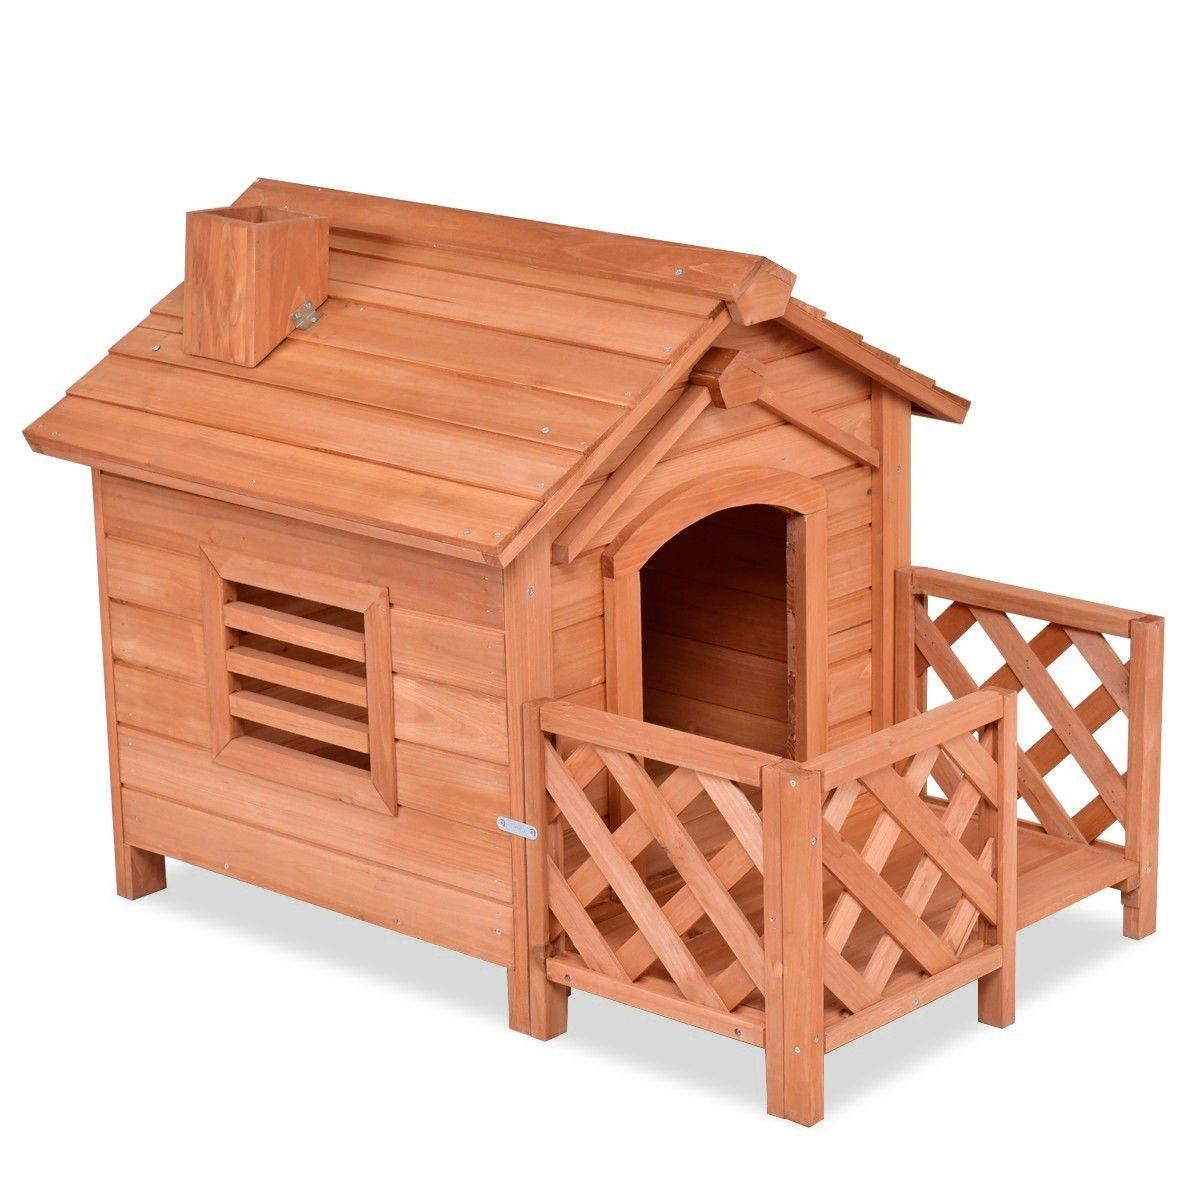 Outdoor Natural Fir Wood Dog House For Small Dogs Wood Dog House